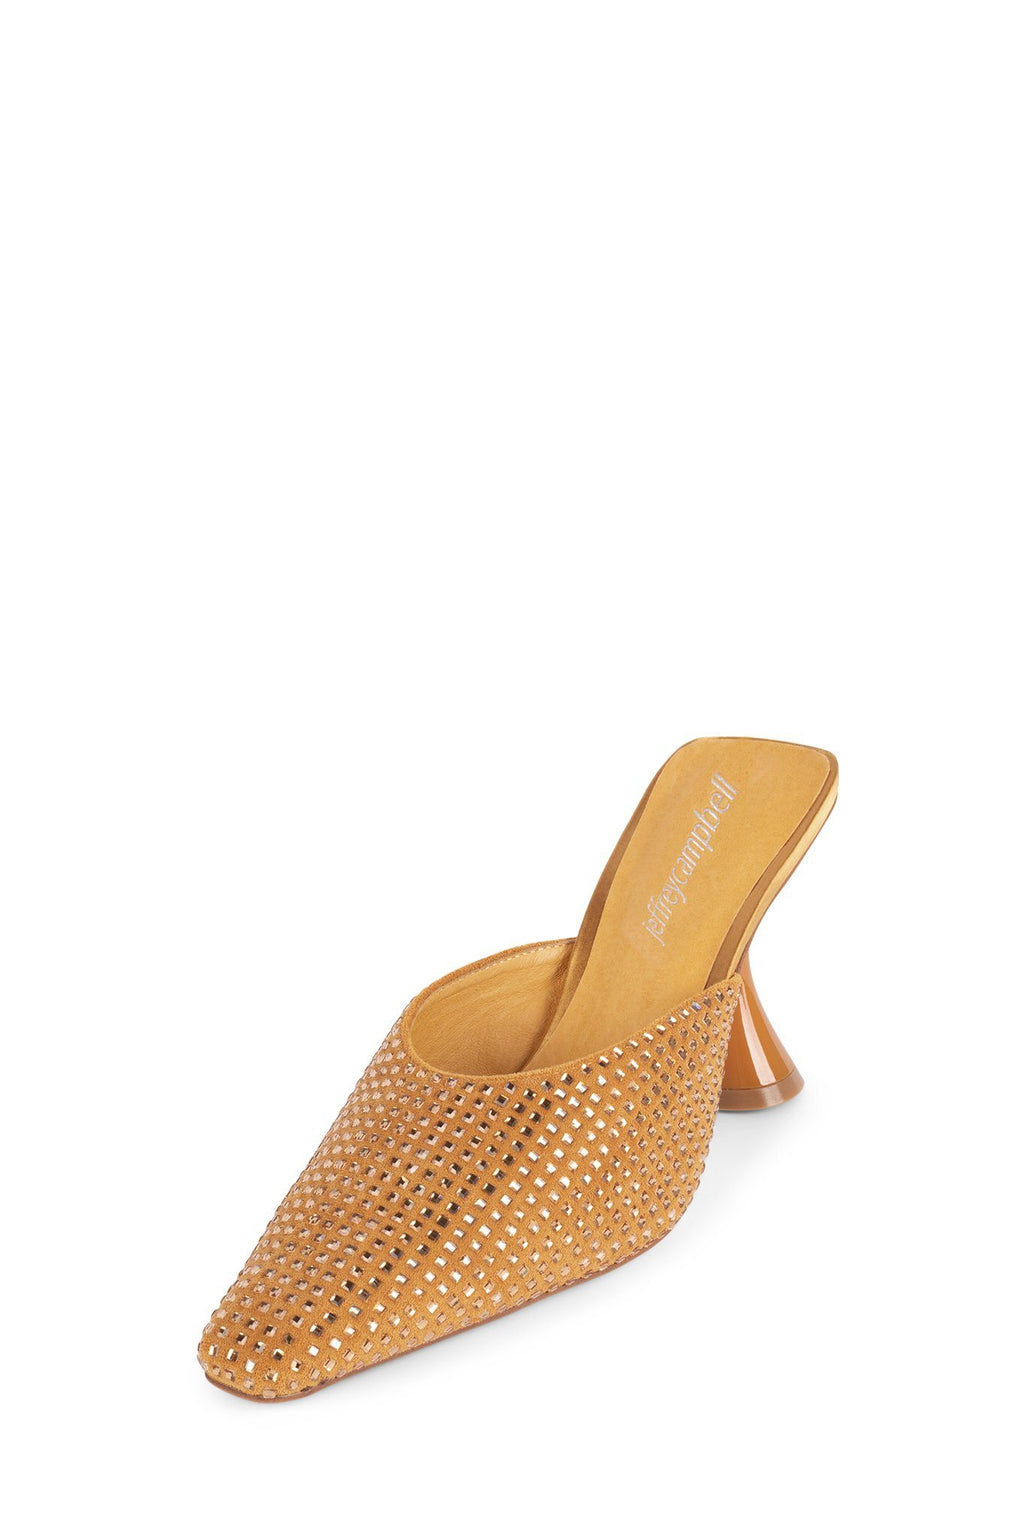 CYRILL-2J Heeled Mule STRATEGY